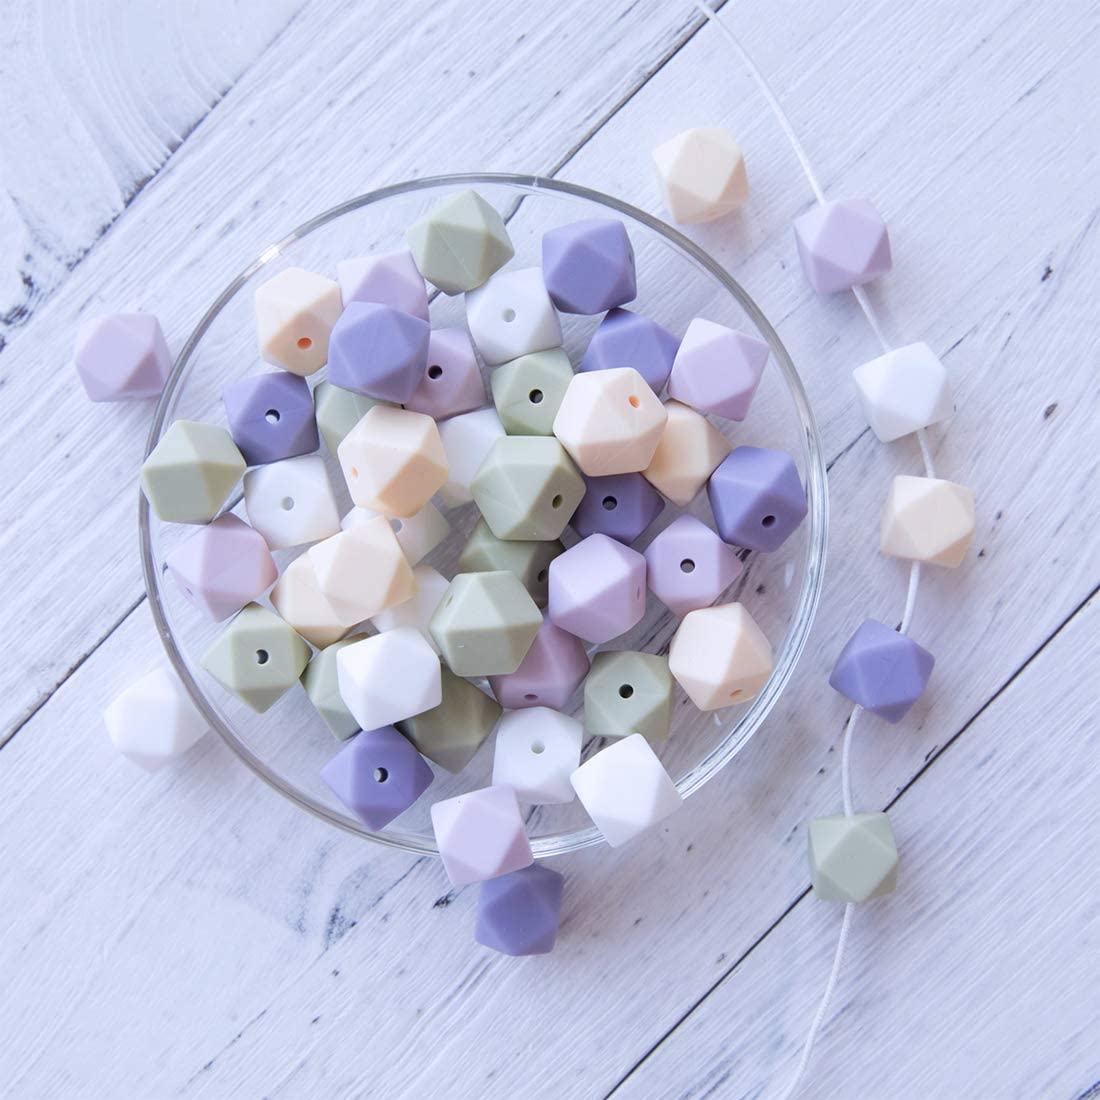 | for DIY Teethers BPA Free Necklaces /& Bracelets 50 PC 14MM HAO JIE Silicone Loose Bead Craft Set